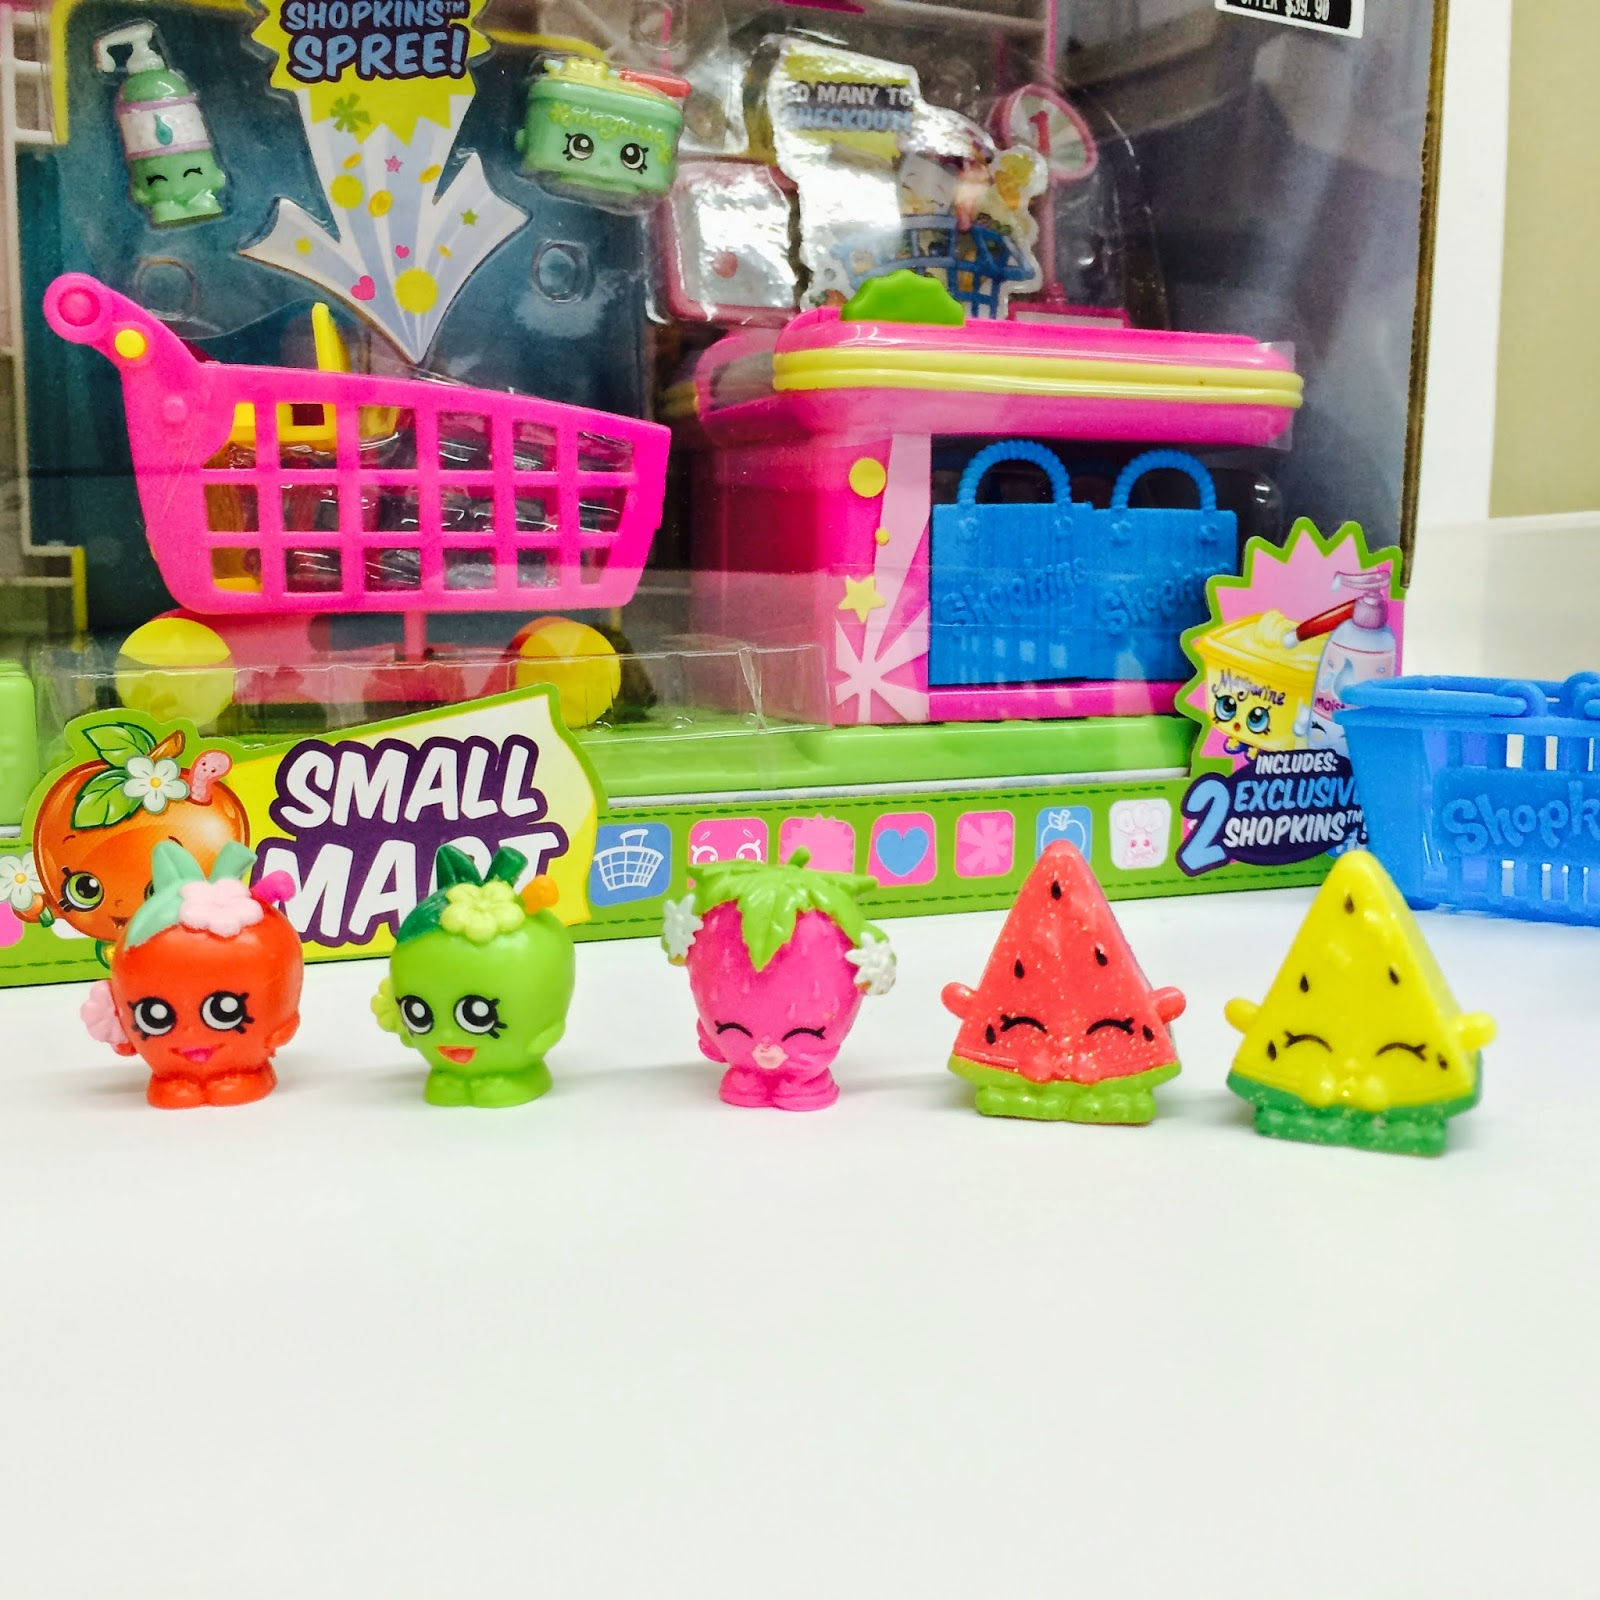 Matilda S Toy Shop Our Shopkins Collection Up To Date